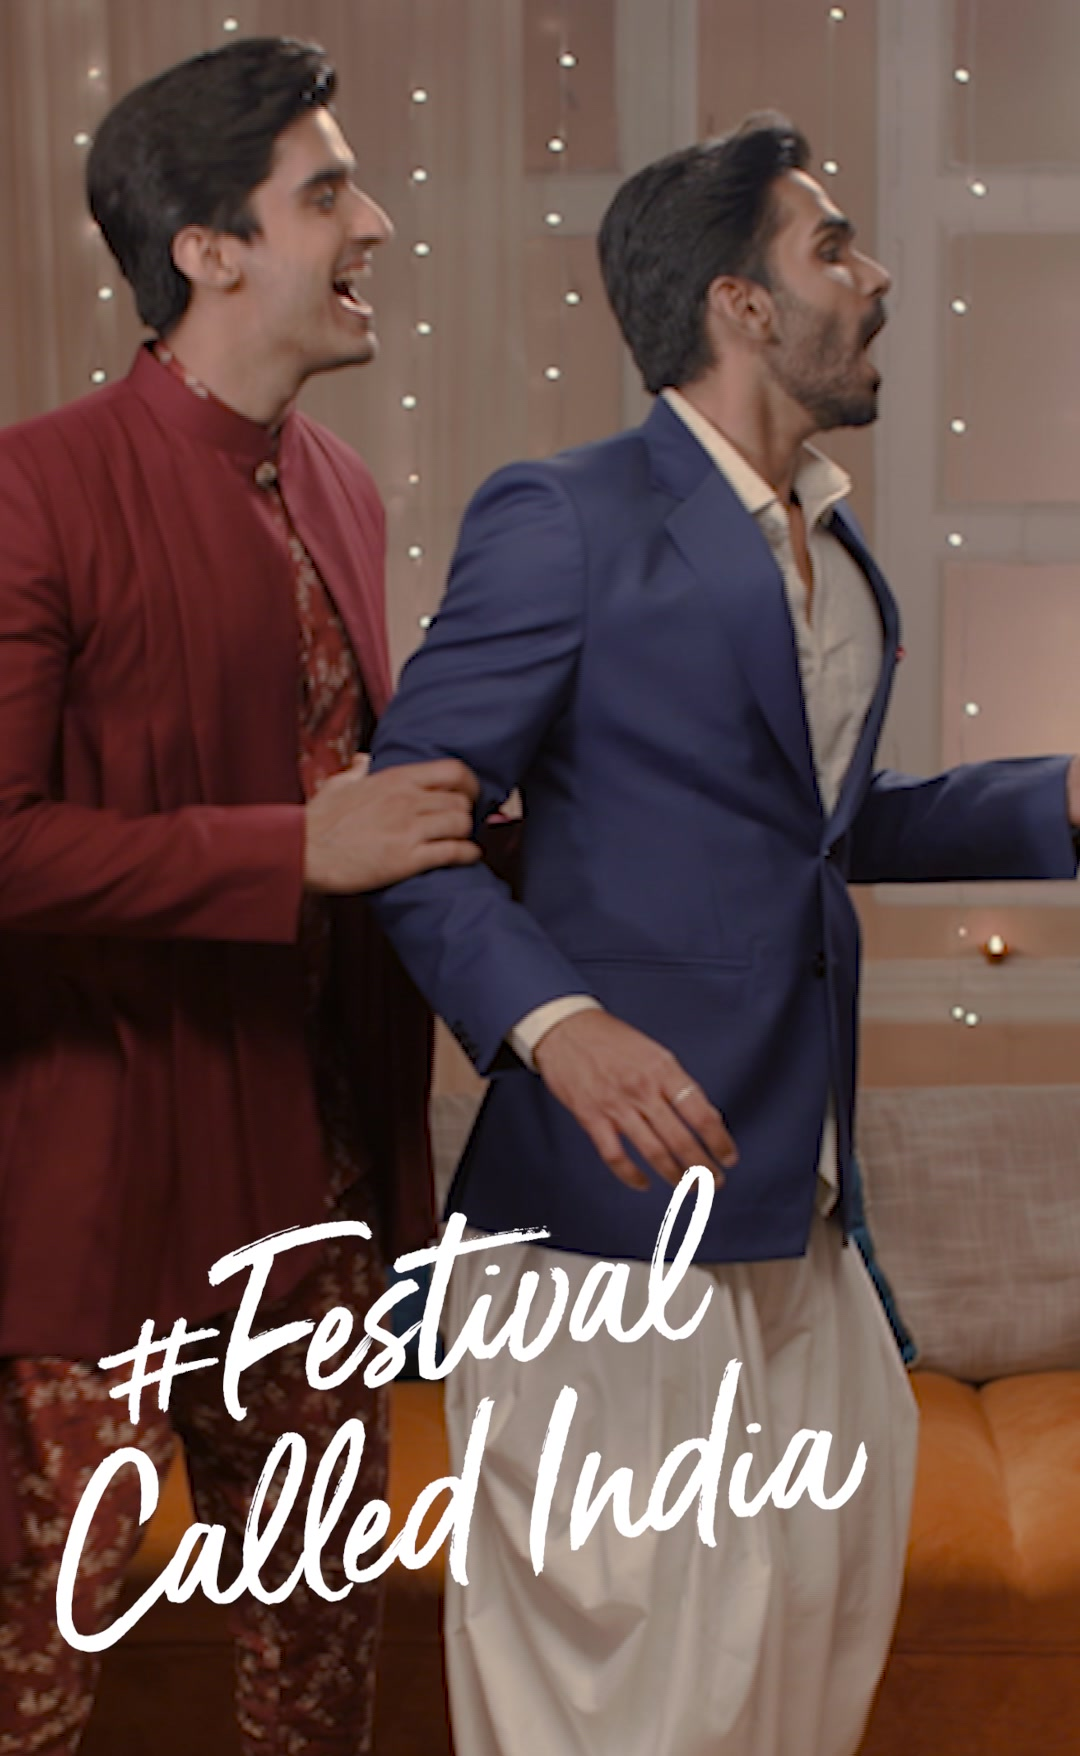 Turn the sweet moments into memories forever. Look your best in the #FestivalCalledIndia.   Fine suiting and shirting fabrics are available at The Arvind Store!  #Arvind #FashioningPossibilities  #LandOfFestivals #FestiveReady #AnOdeToCelebrations #FestiveLook #FestiveLookBook #ArvindLookBook #EthnicWears #TraditionalOutfits #Menswear #ClassicCollection